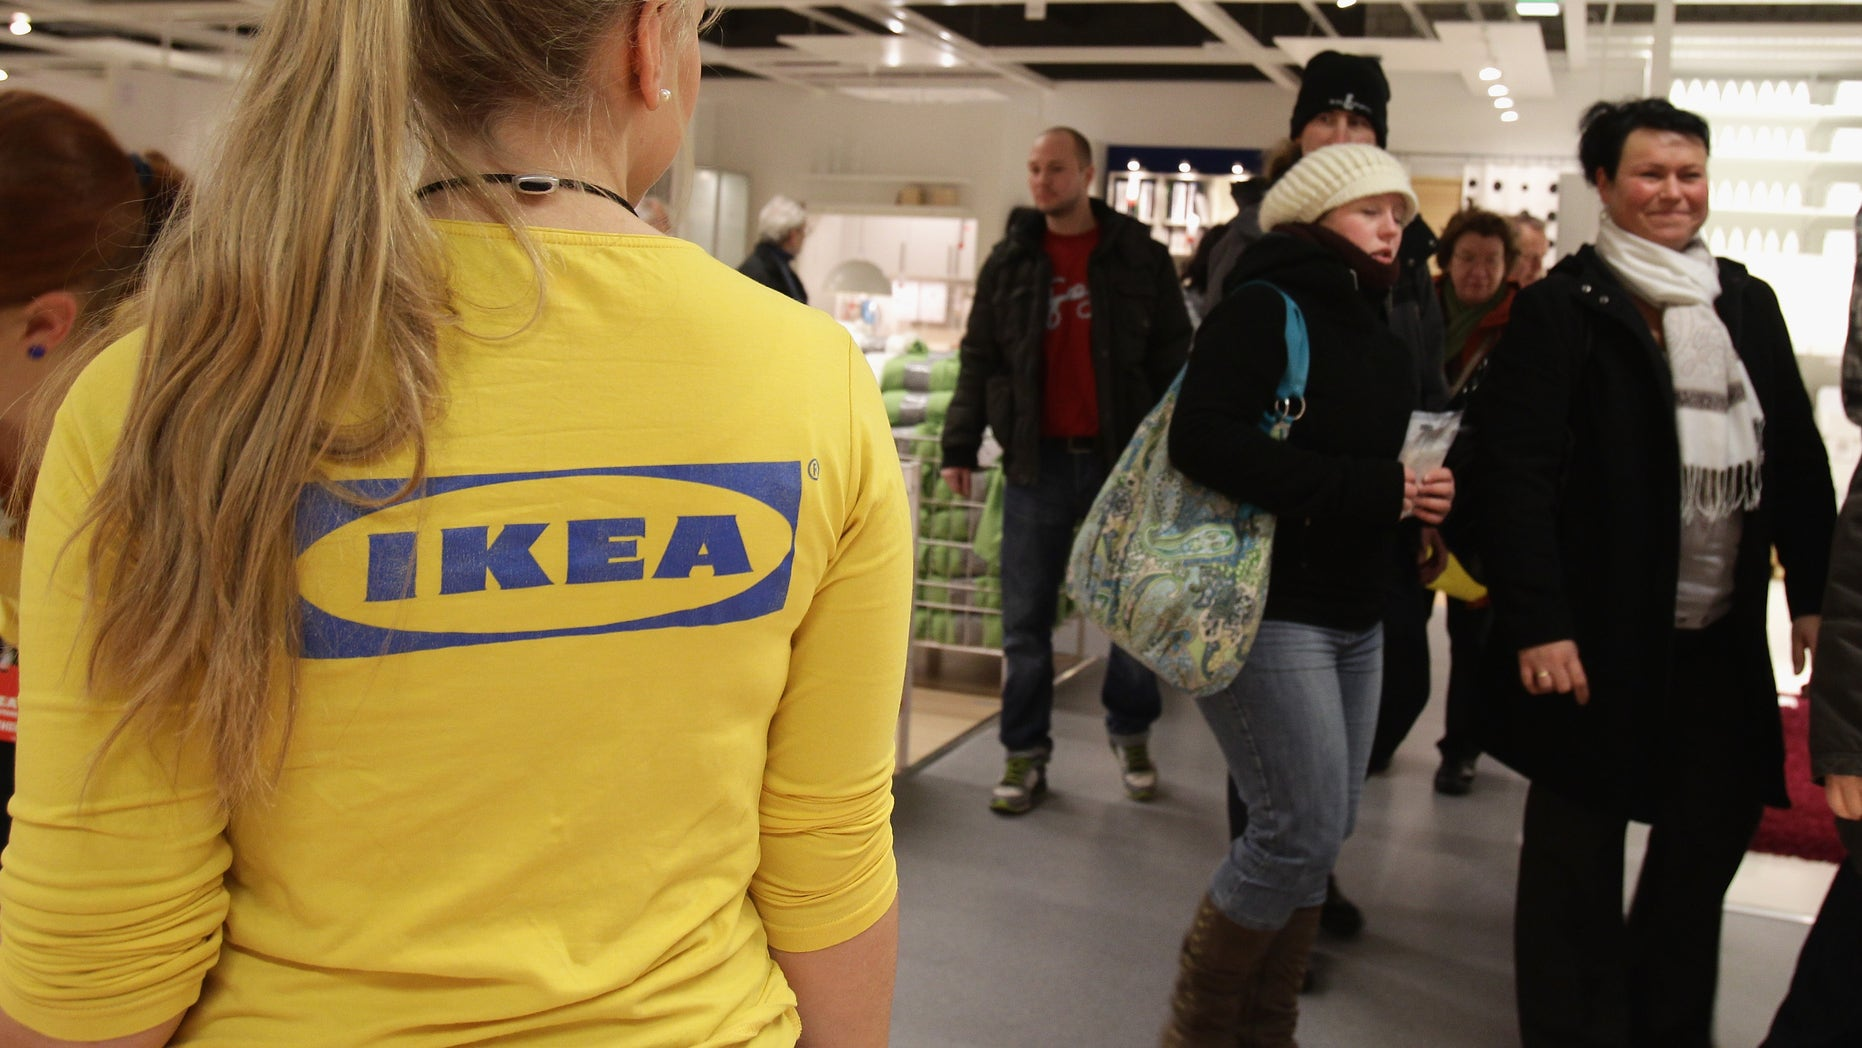 BERLIN, GERMANY - DECEMBER 13:  An Ikea employee watches customers shopping during a store opening at the 4th Ikea chain store in Berlin Lichtenberg on December 13, 2010 in Berlin, Germany. Ikea, a Swedish furniture and household goods company now has 46th chain stores in Germany, including the newly opened one in Berlin Lichtenberg, which is the biggest one in Germany.  (Photo by Andreas Rentz/Getty Images)